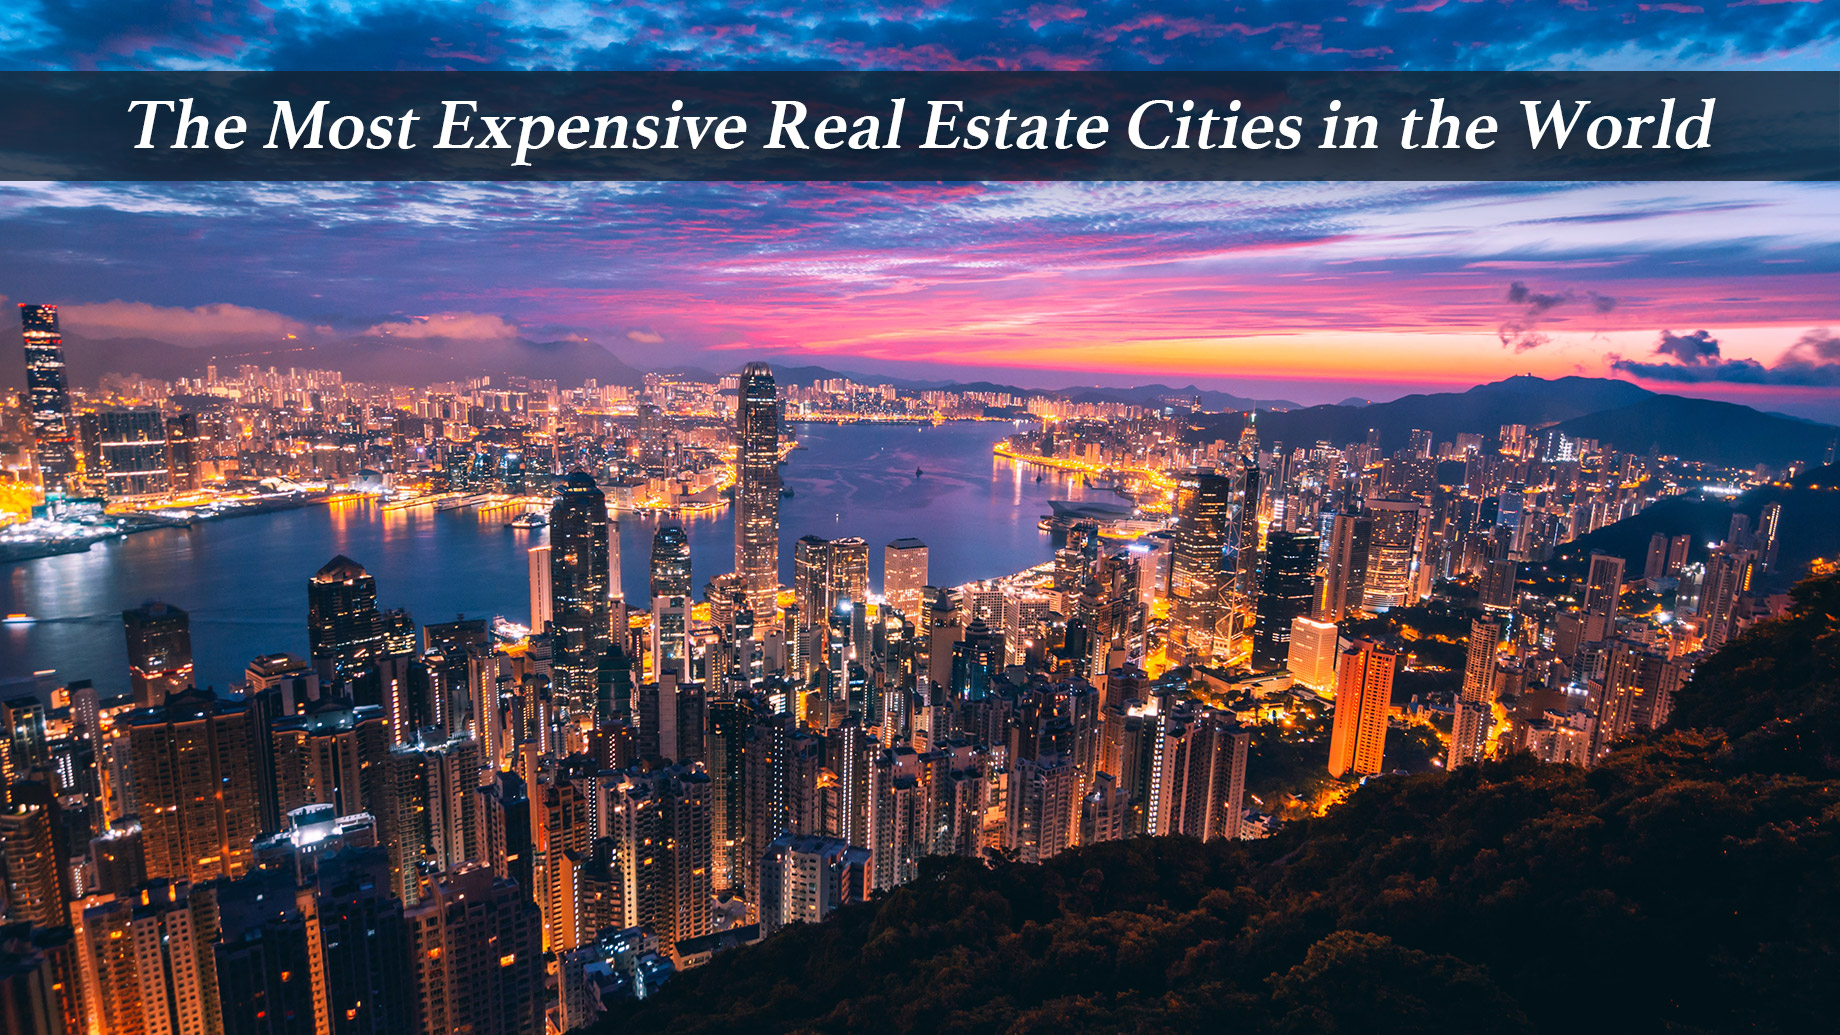 The Most Expensive Real Estate Cities in the World